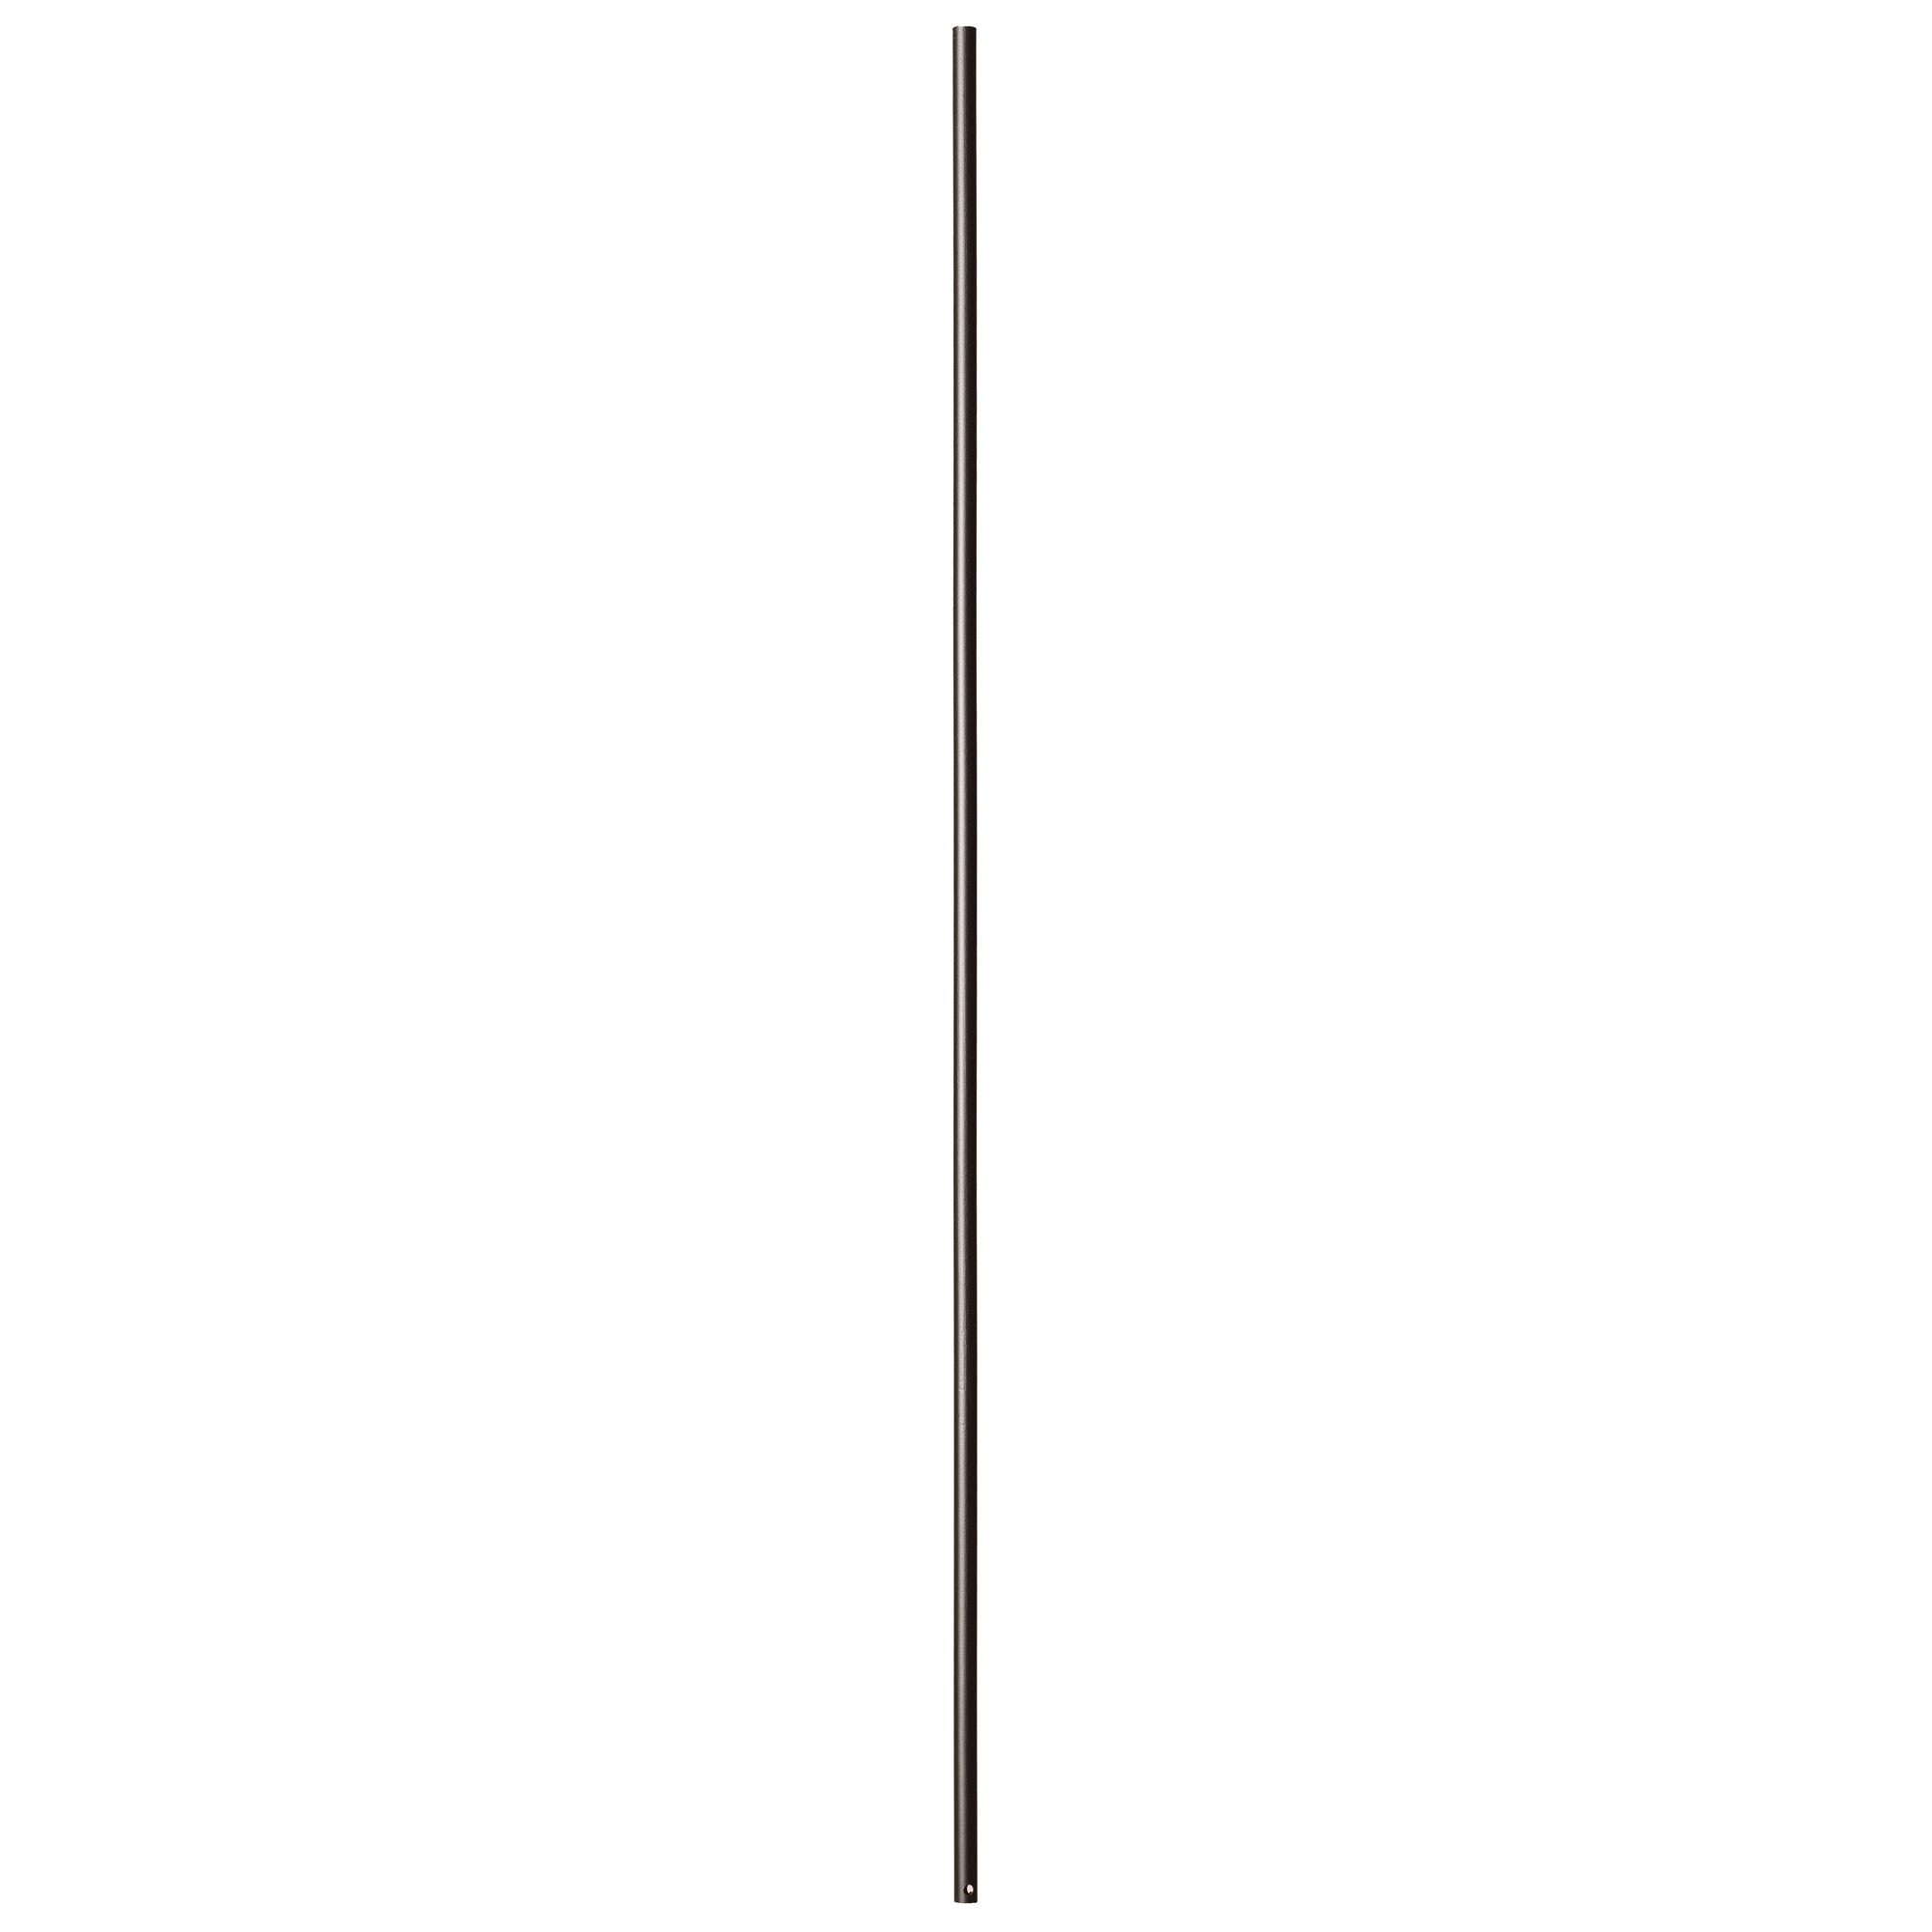 "Round Series 9/16"" Dia. x 44""H Hollow Iron Baluster (9068RB)"